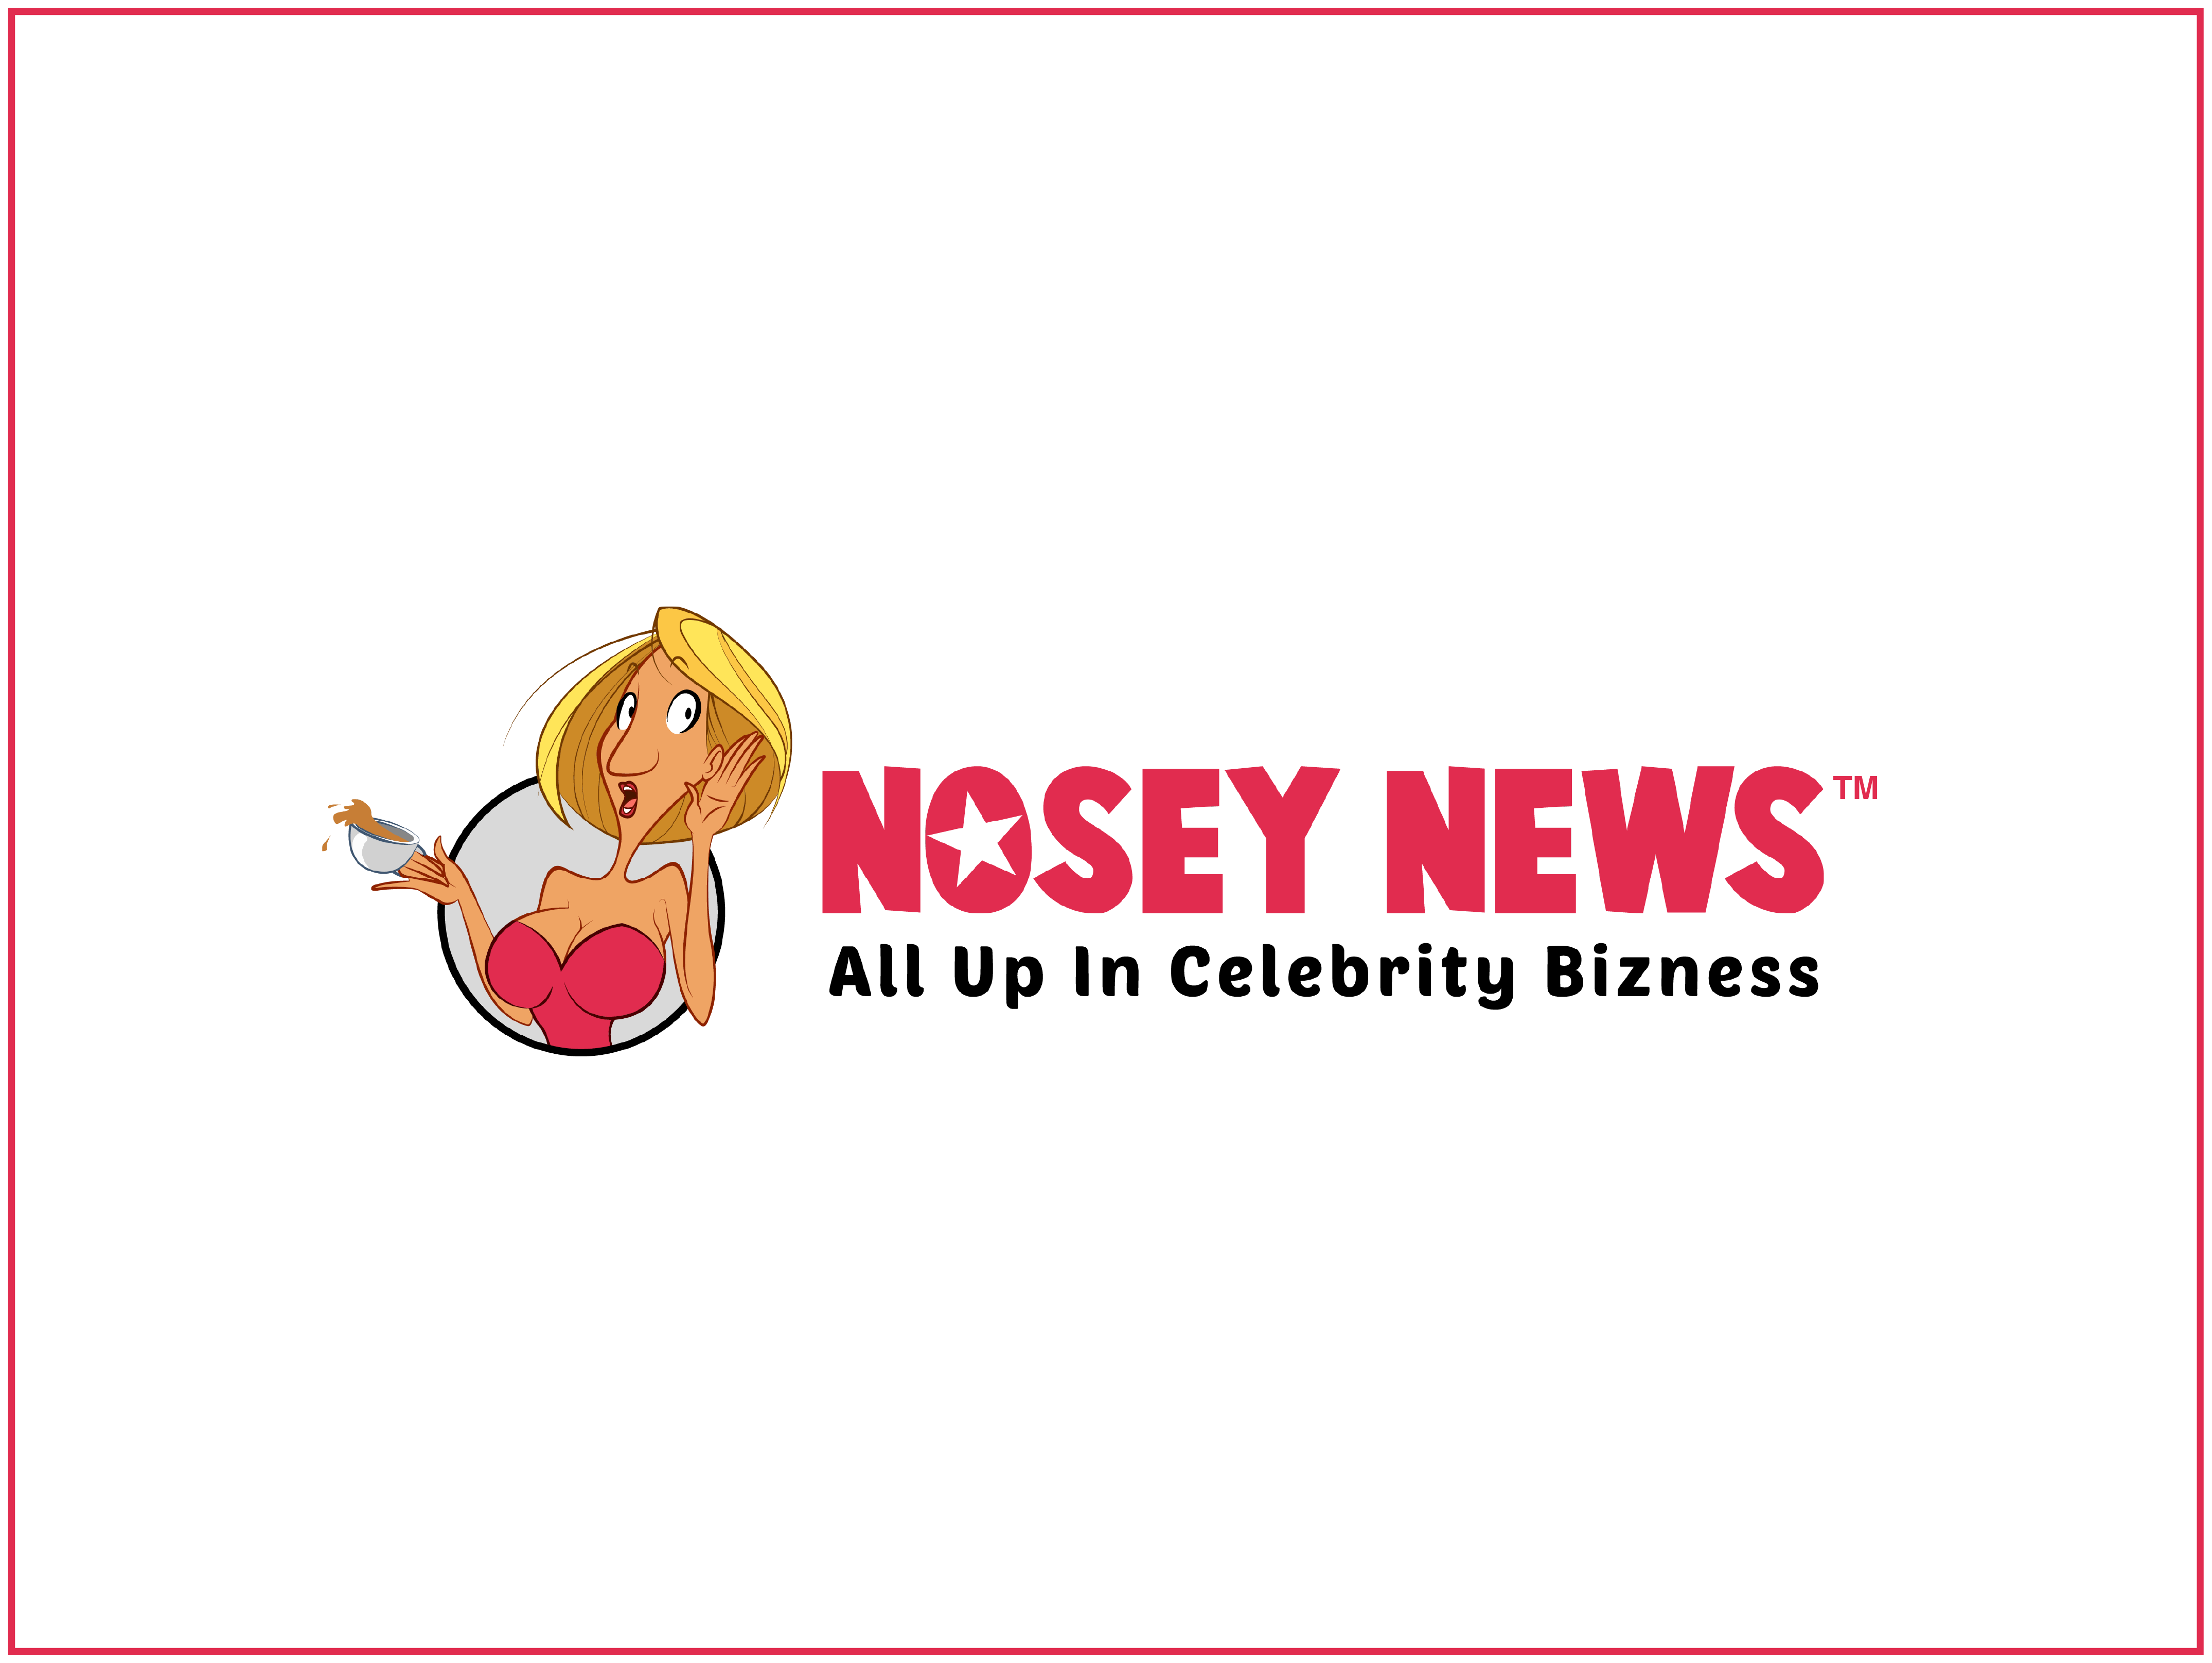 Nosey_news_Featured